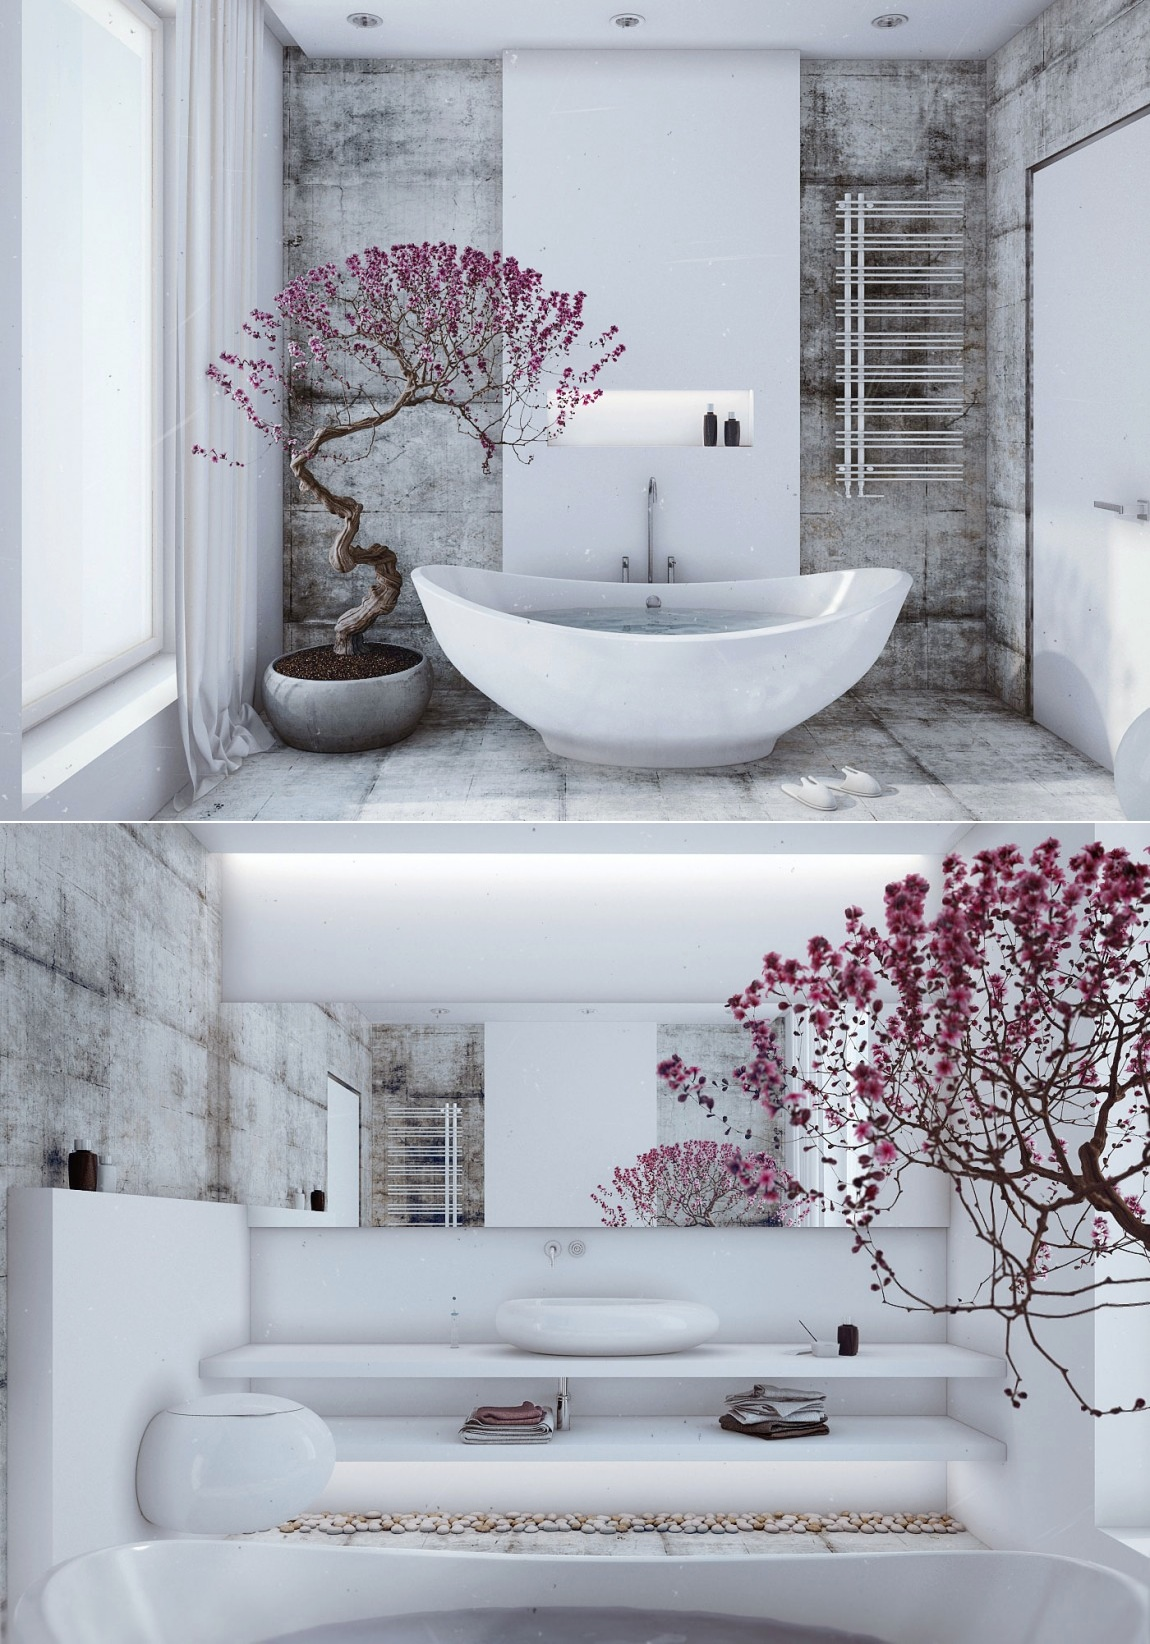 25 Peaceful Zen Bathroom Design Ideas Decoration Love